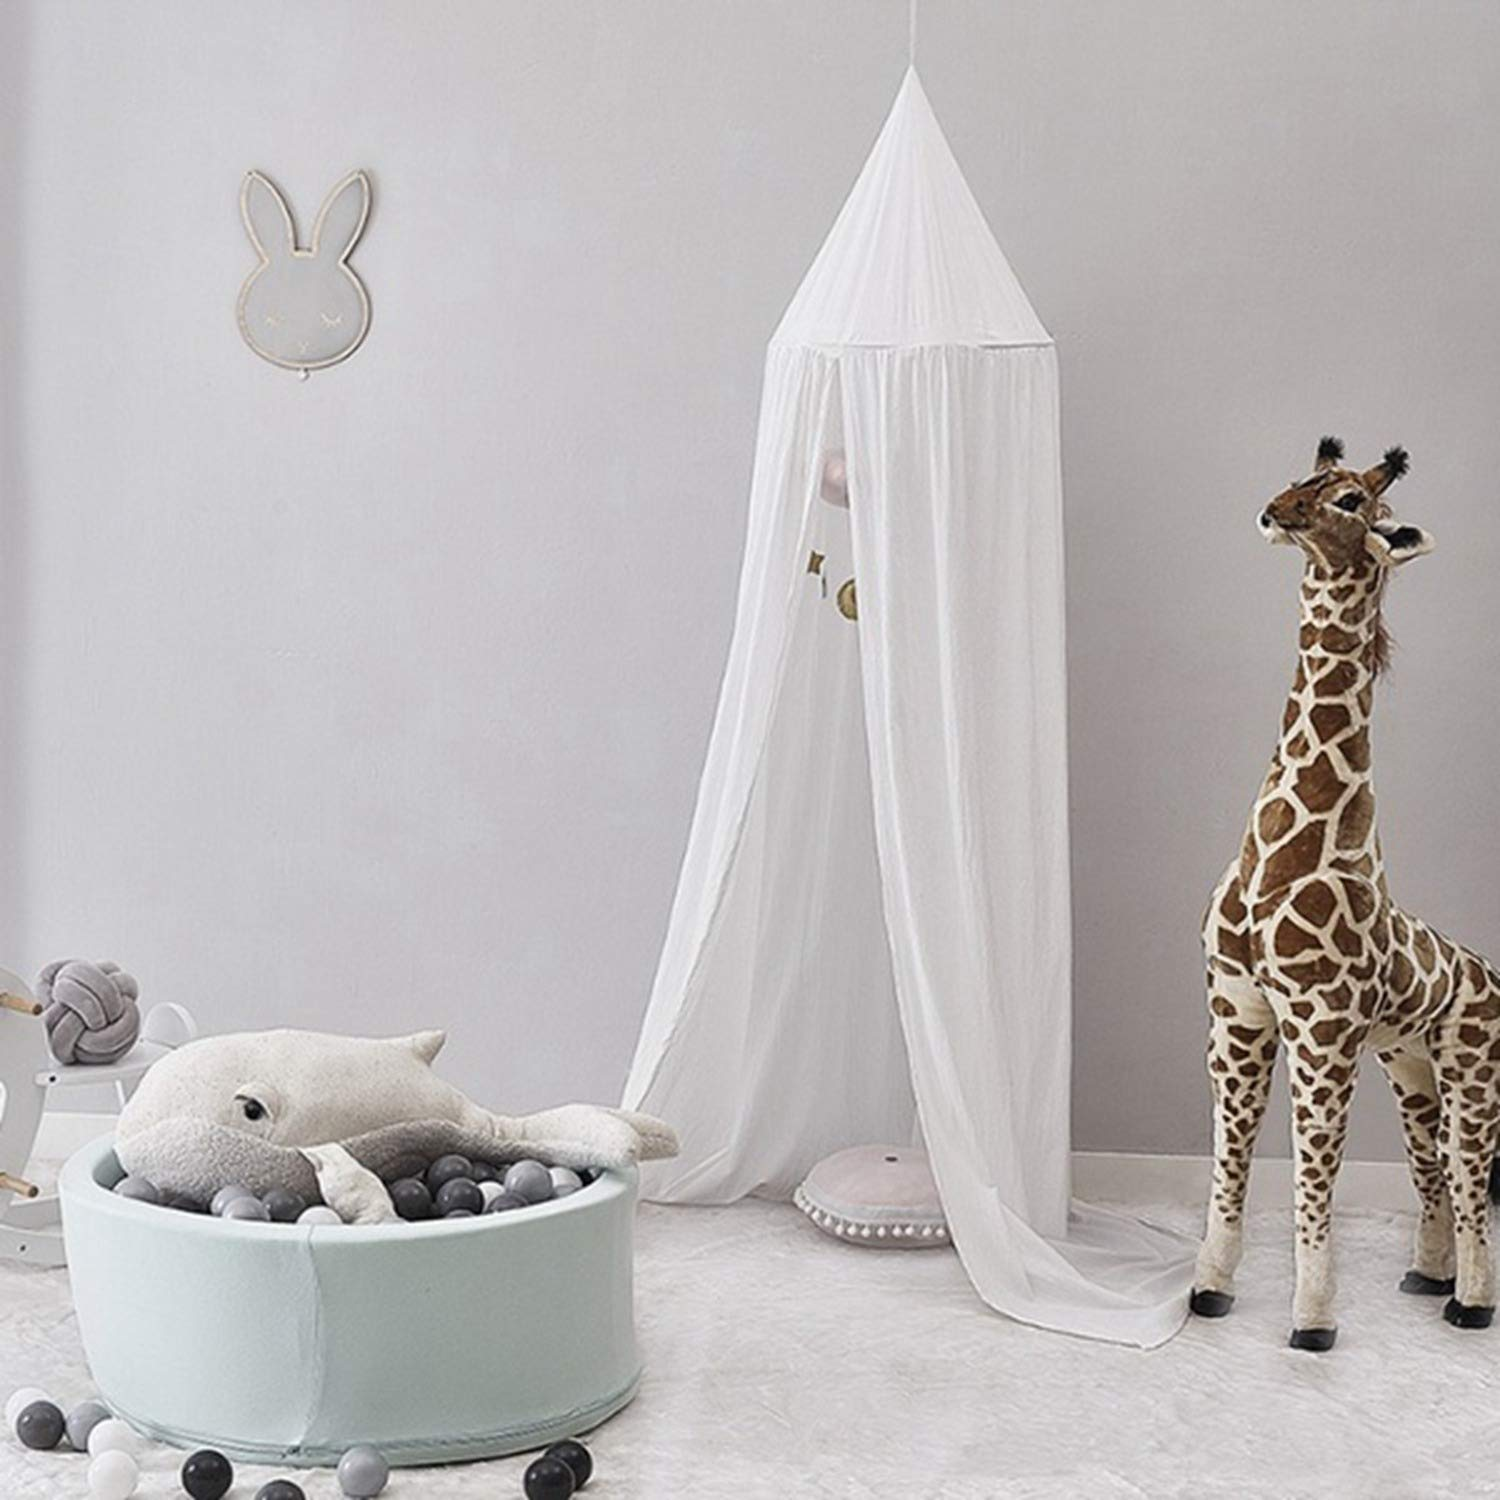 Xigeapg Bed Canopy Baby Net Chiffon Curtain Bedding Dome Tent,White